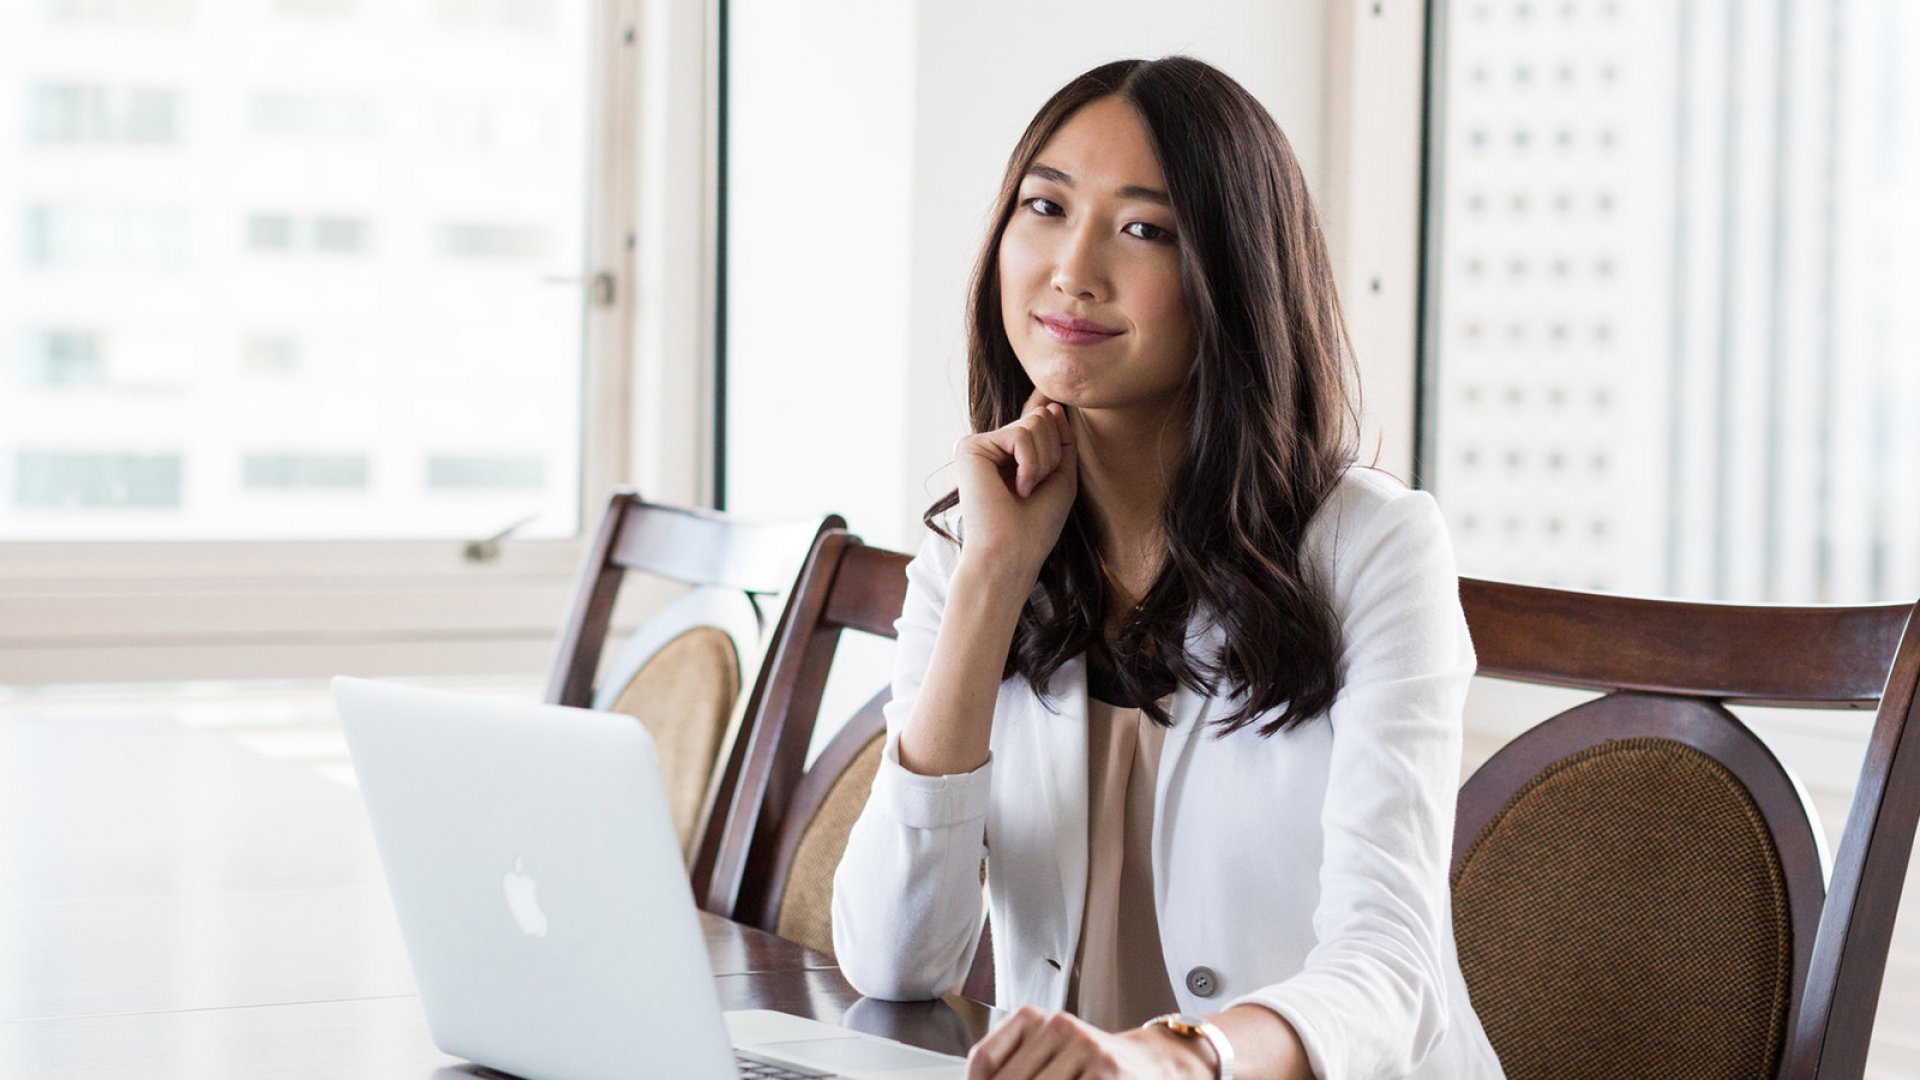 Jessica Mah Shares Her 5 Best Pieces of Advice for Women Entrepreneurs